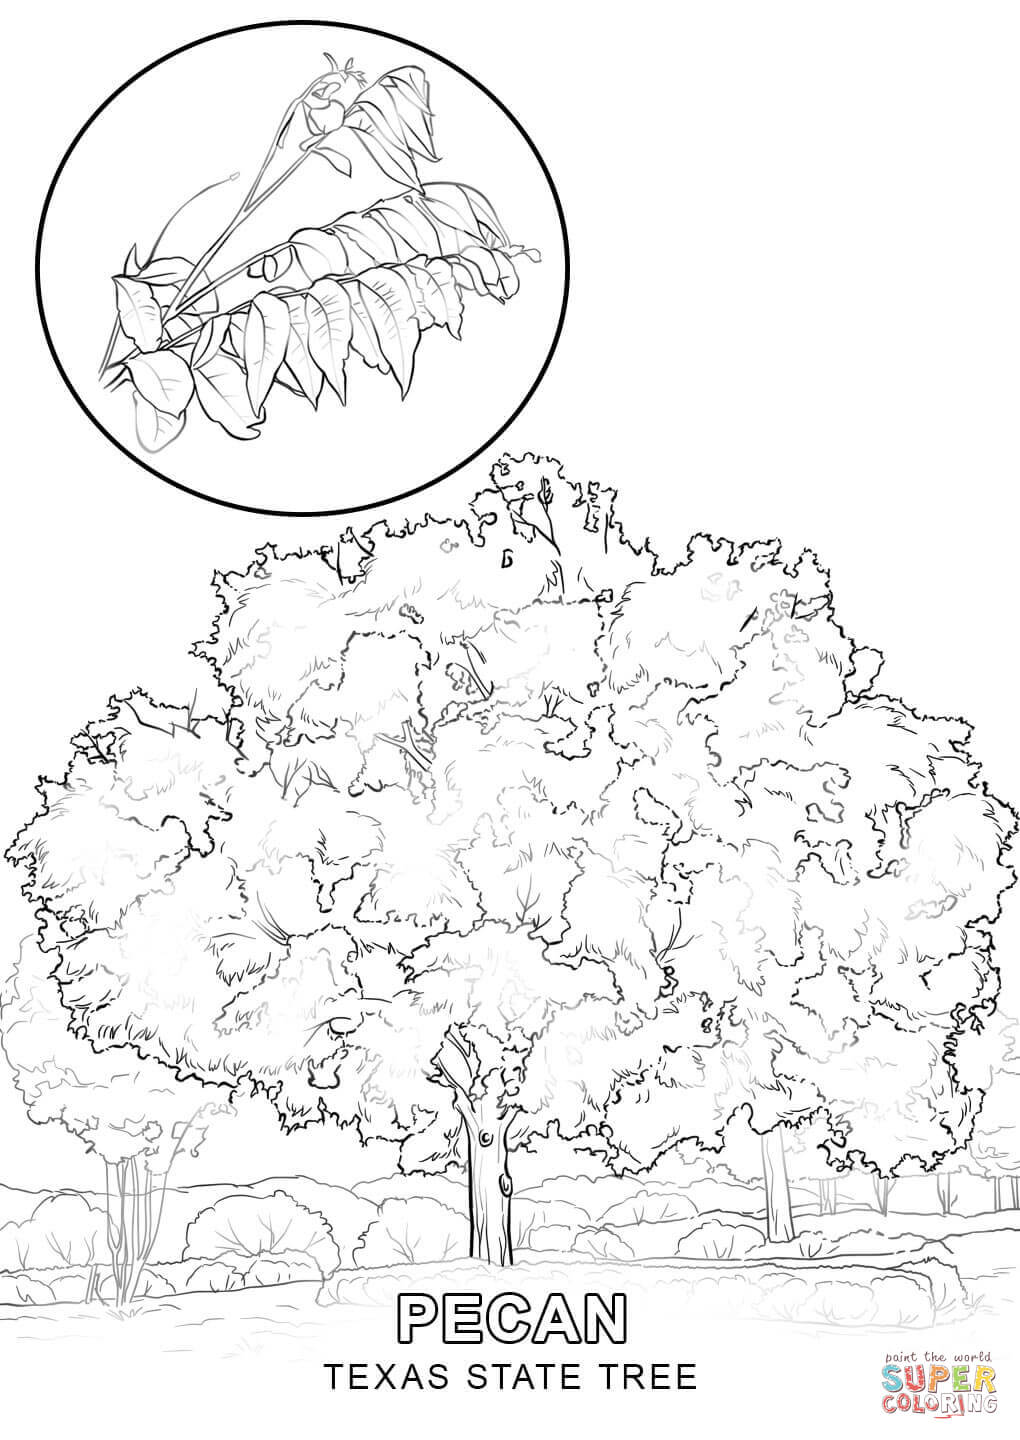 texas symbols coloring pages texas state symbols coloring pages coloring home coloring symbols texas pages